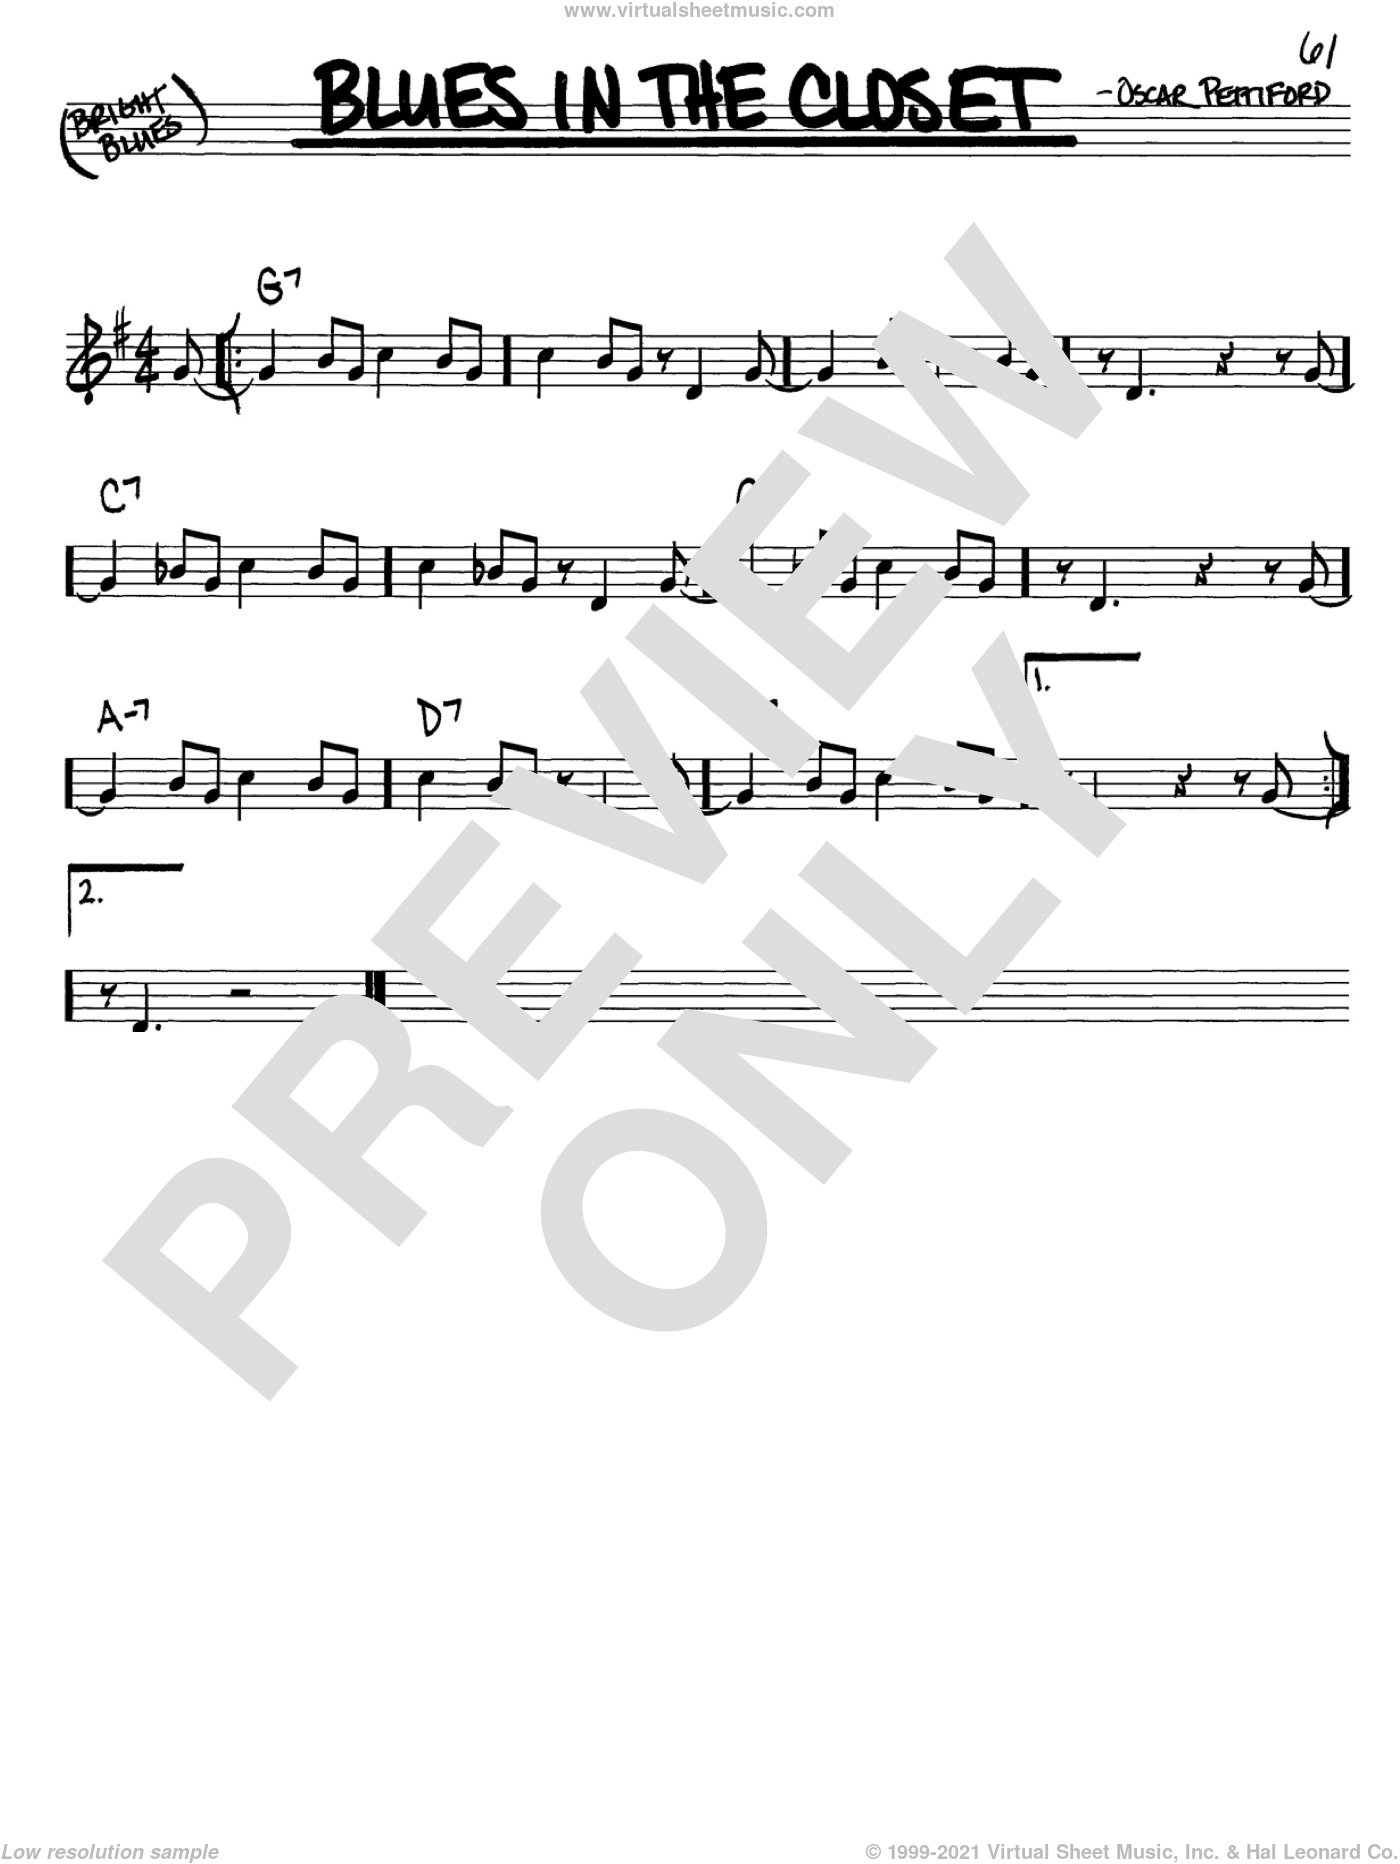 Blues In The Closet sheet music for voice and other instruments (in C) by Oscar Pettiford, intermediate skill level